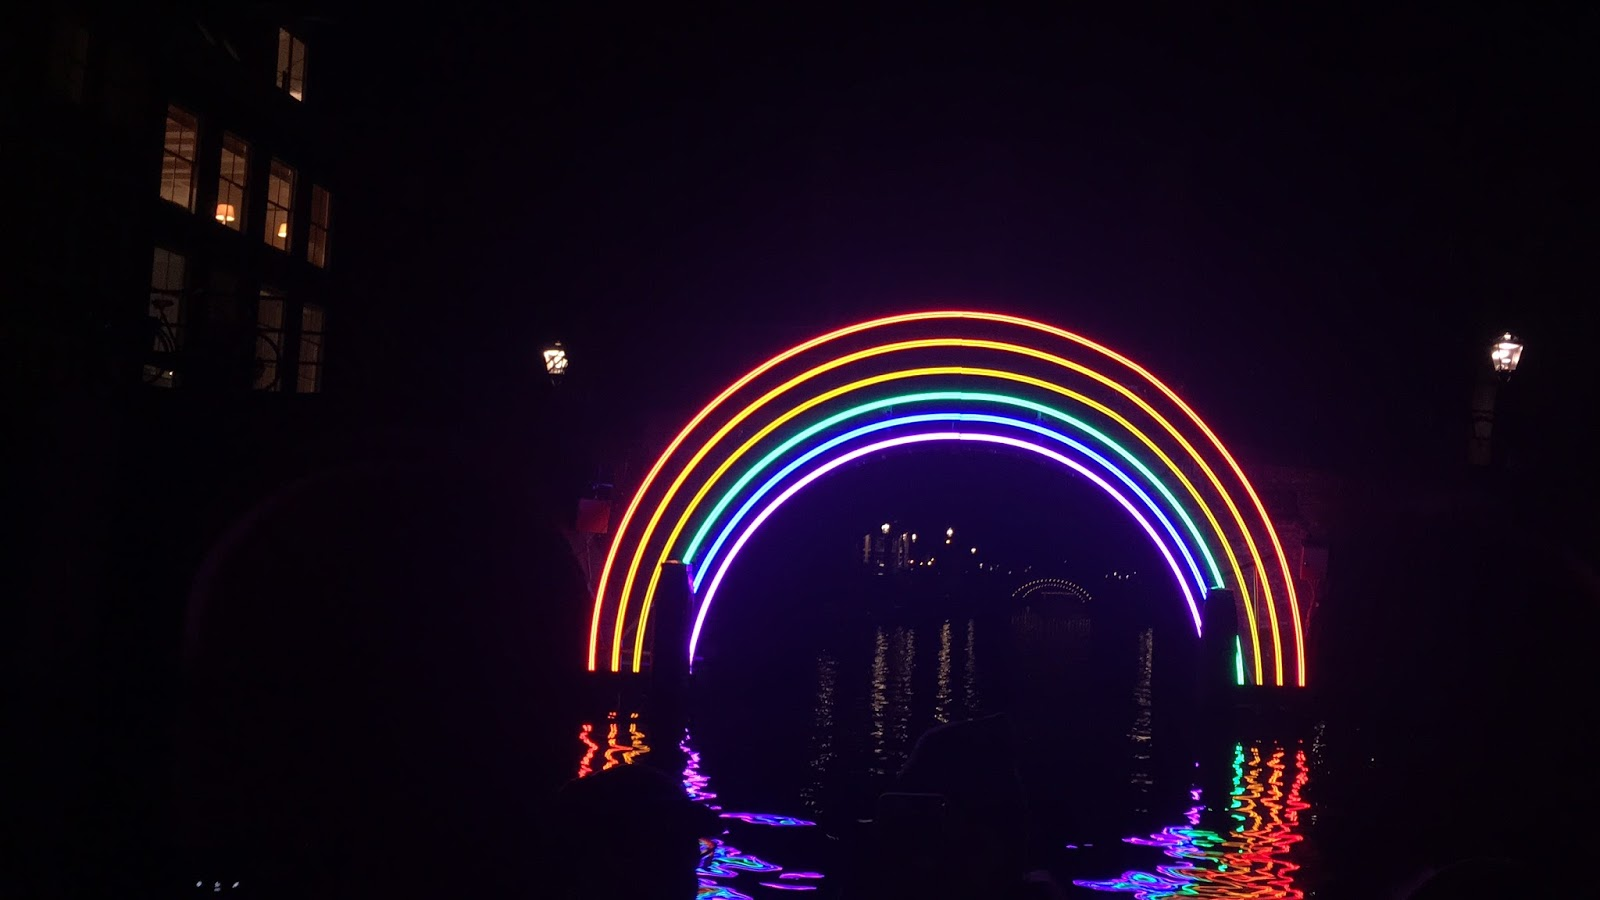 A rainbow of lights- the Amsterdam light festival display as seen from a canal boat.